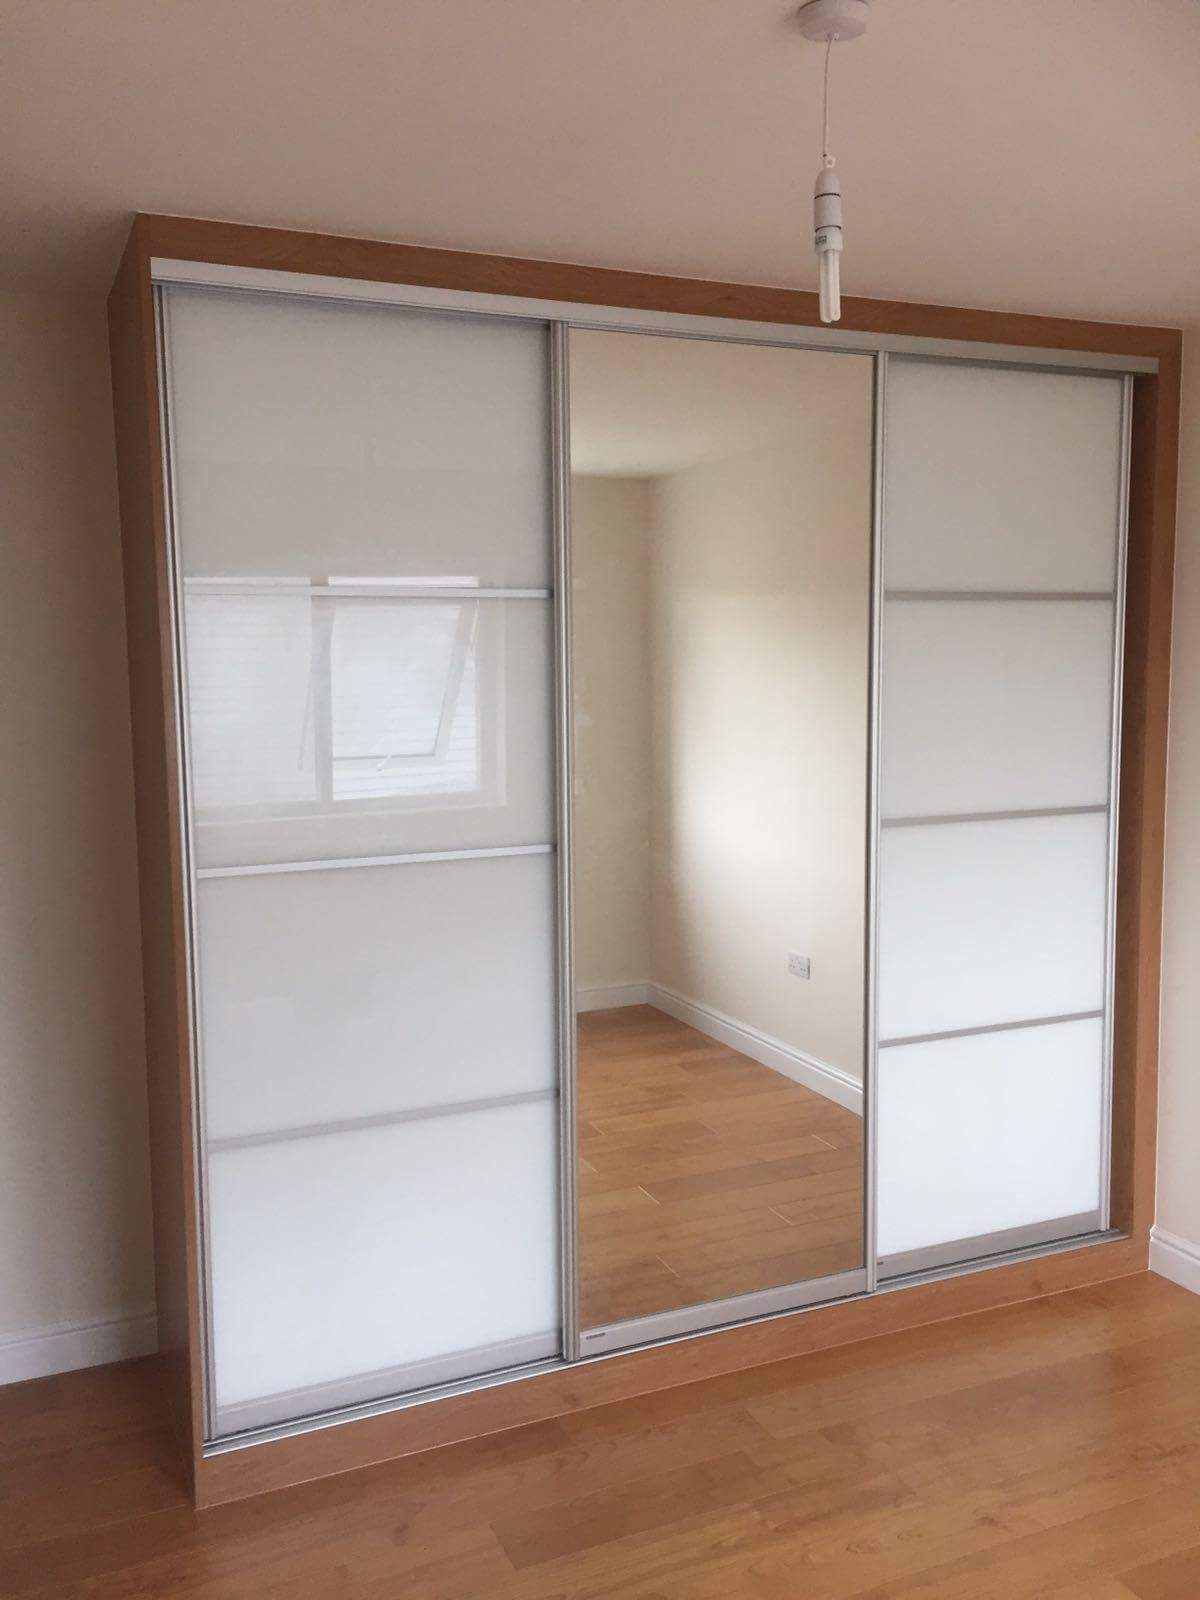 The Reason White High Gloss Wardrobes Manage To Remain Popular Amongst The Customers Sliding Door Wardrobe Designs Sliding Wardrobe Doors Wardrobe Door Designs